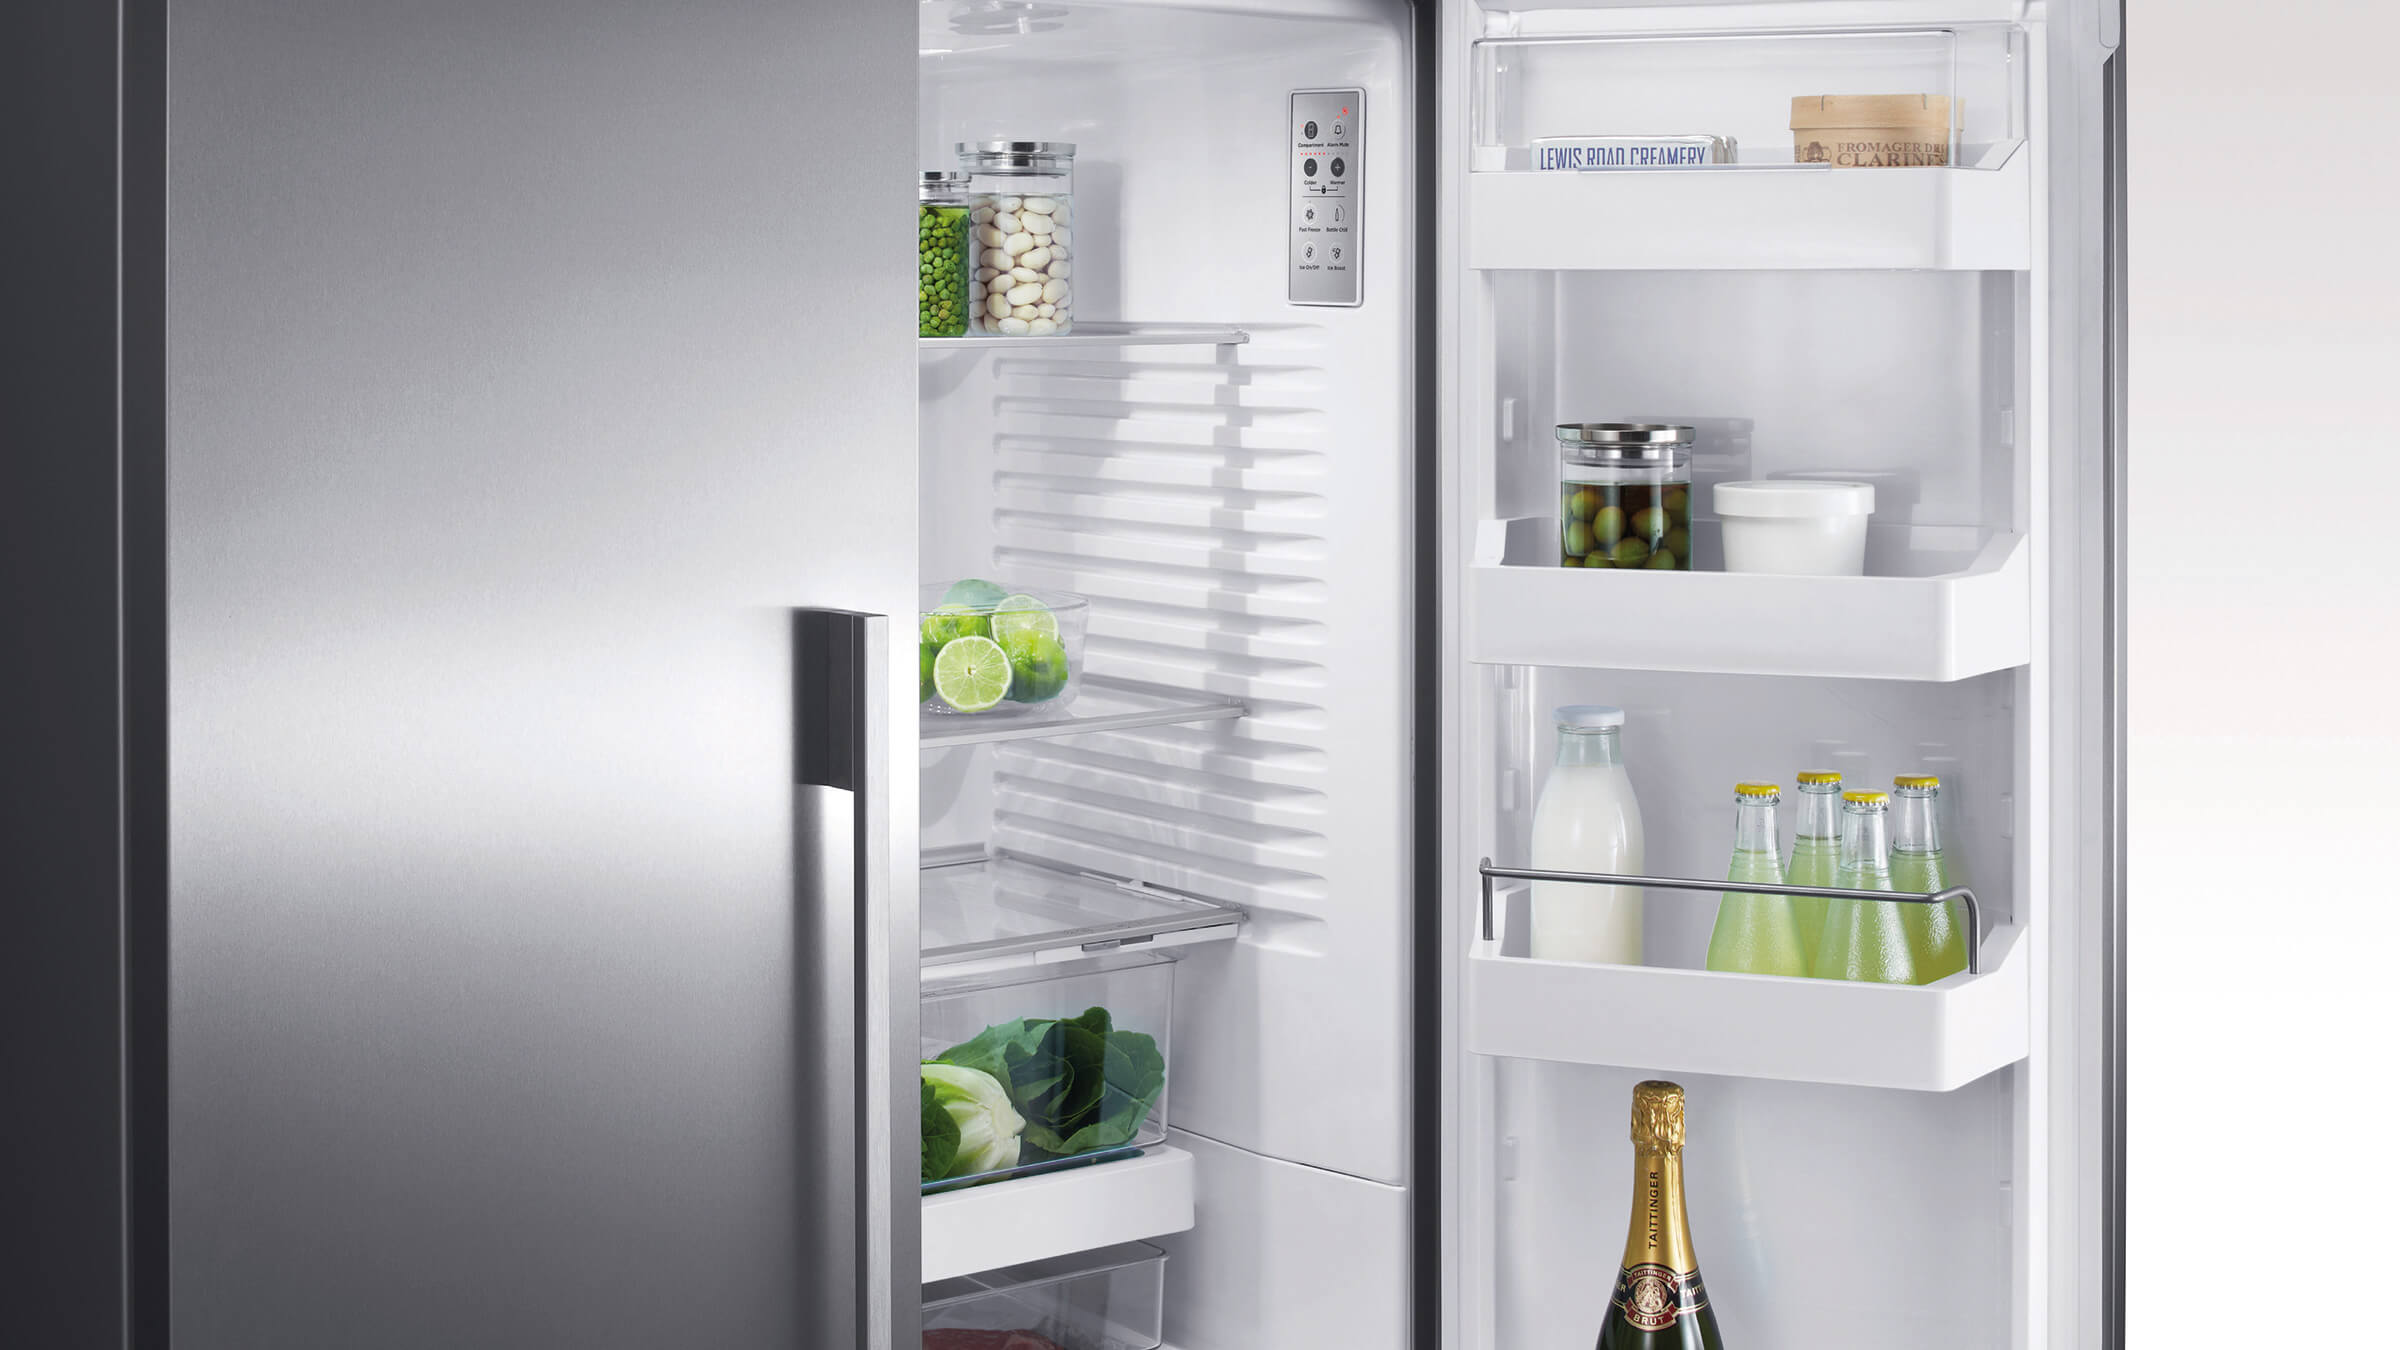 rf522adx4 stainless steel american style fridge fisher paykel uk rh fisherpaykel com Fisher Paykel Refrigerator Manual Fisher Paykel DD603 Repair Manual